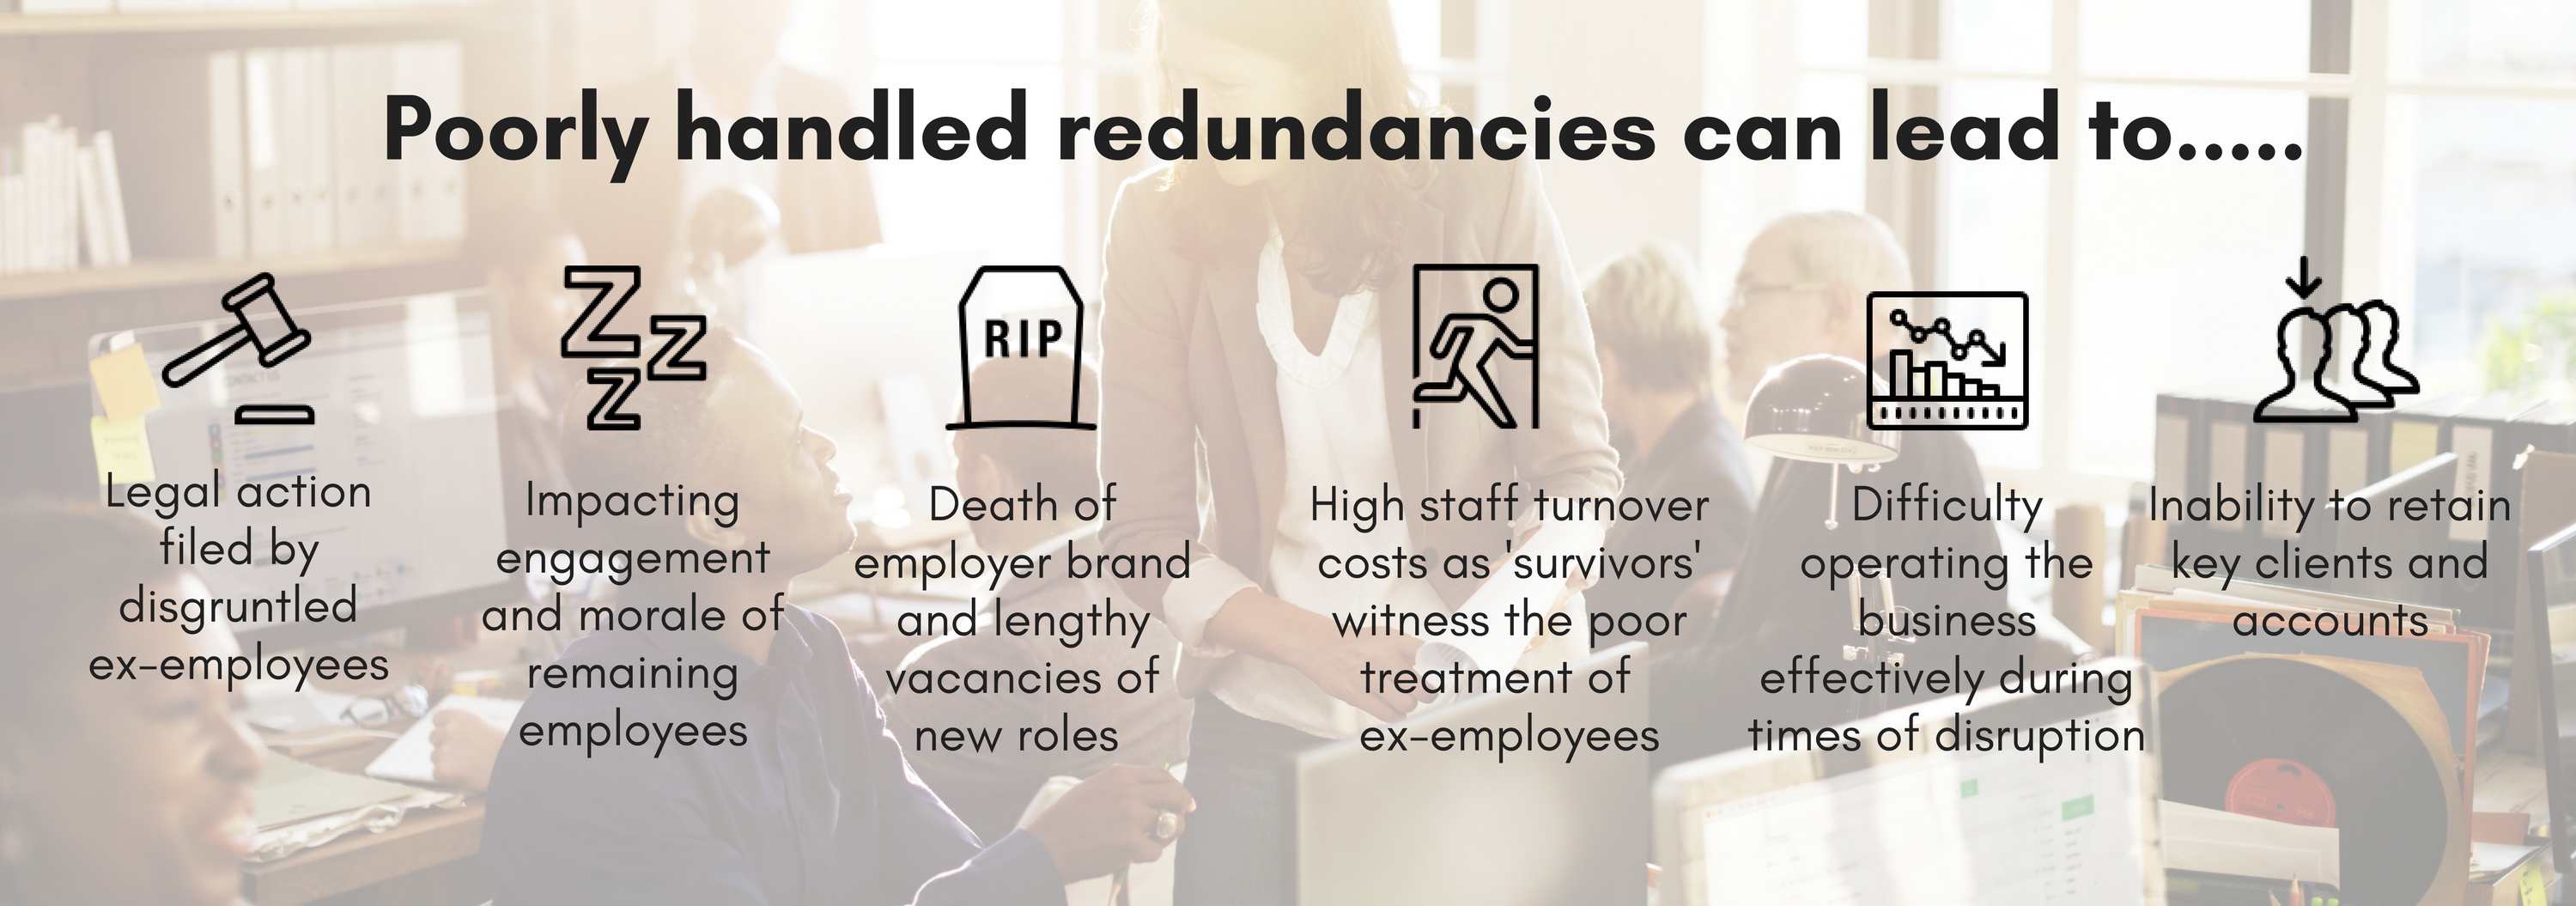 Poorly handled redundancies can lead to.png